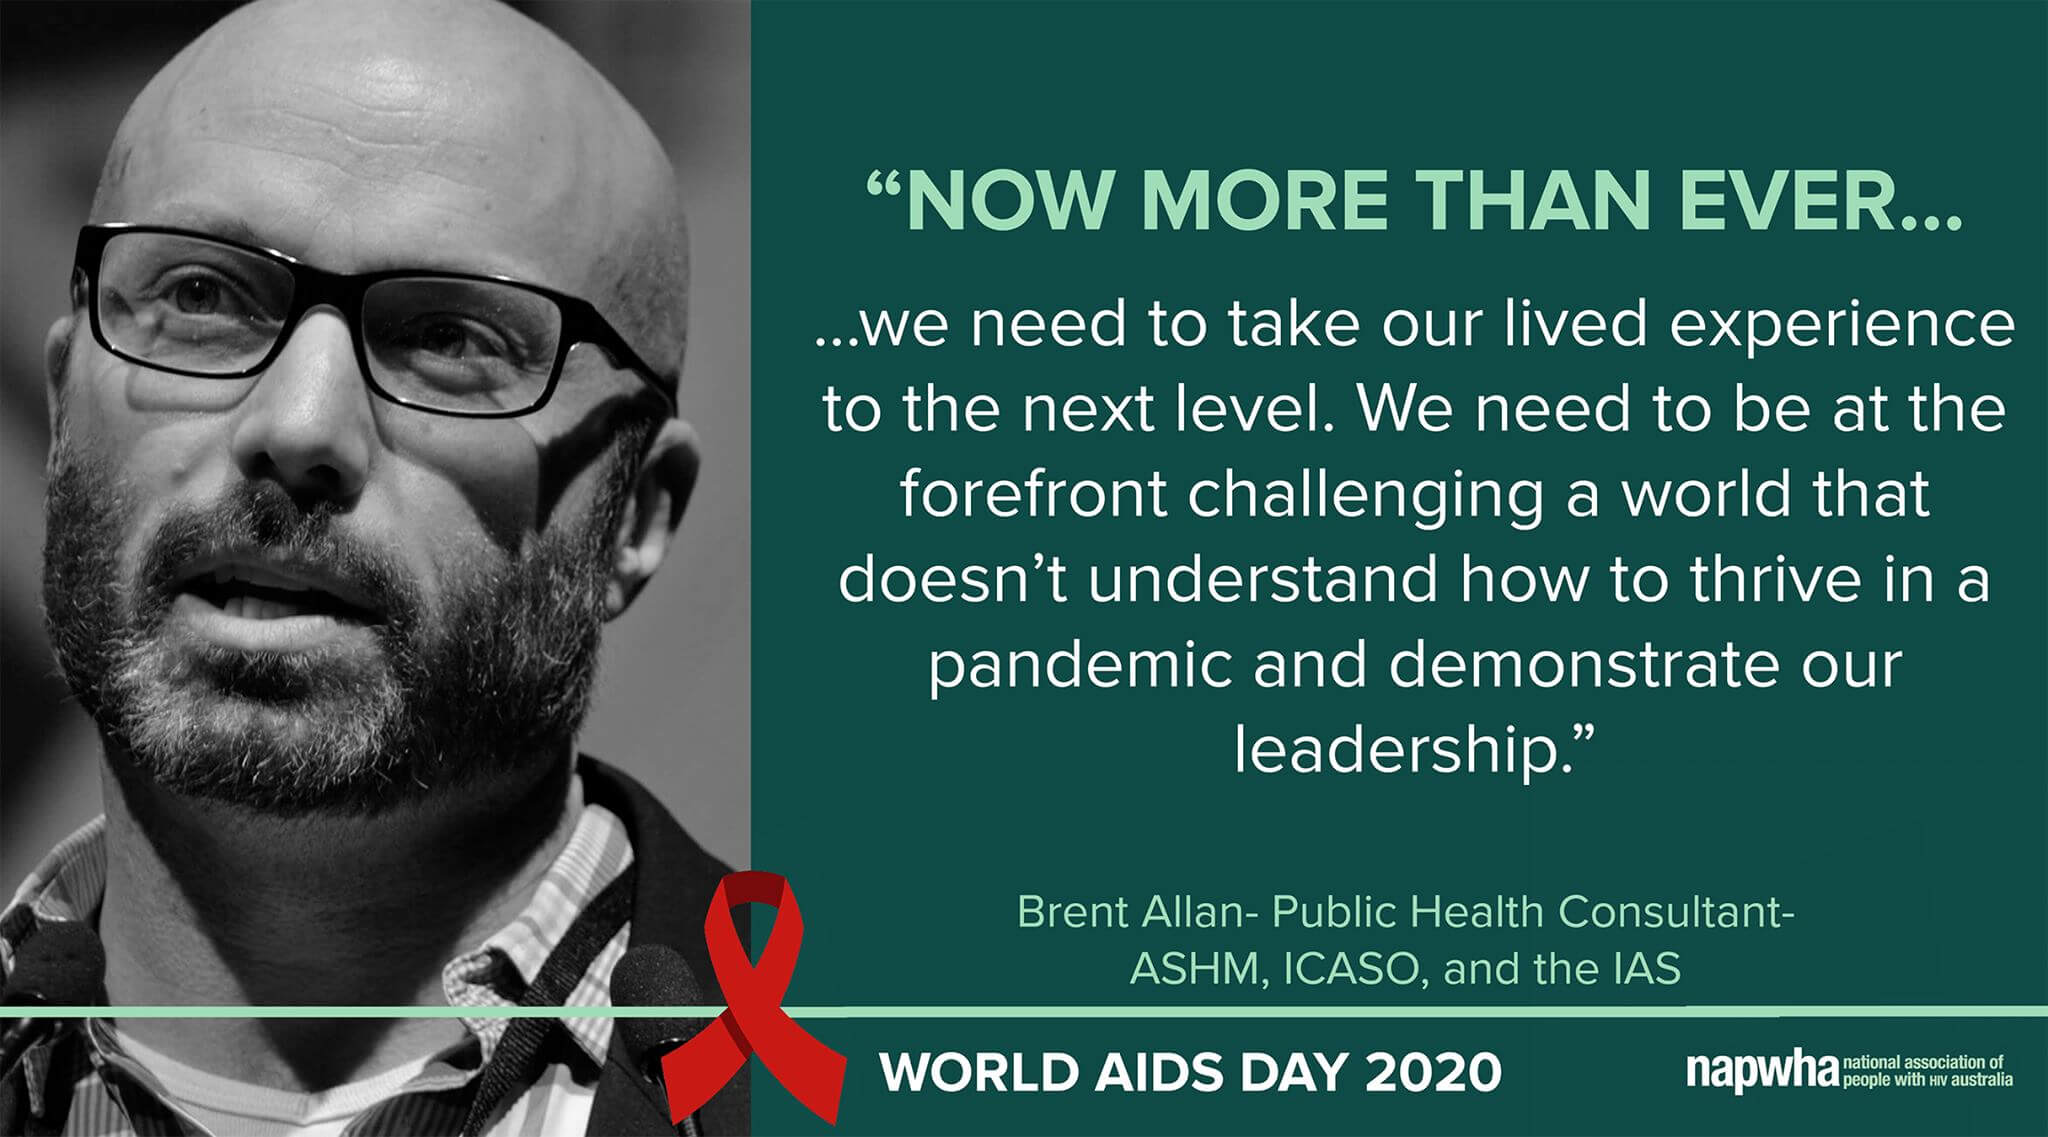 Brent Allen, Public Health consultant for ASHM, ICASO and the IAS provides a World AIDS Day 2020 message